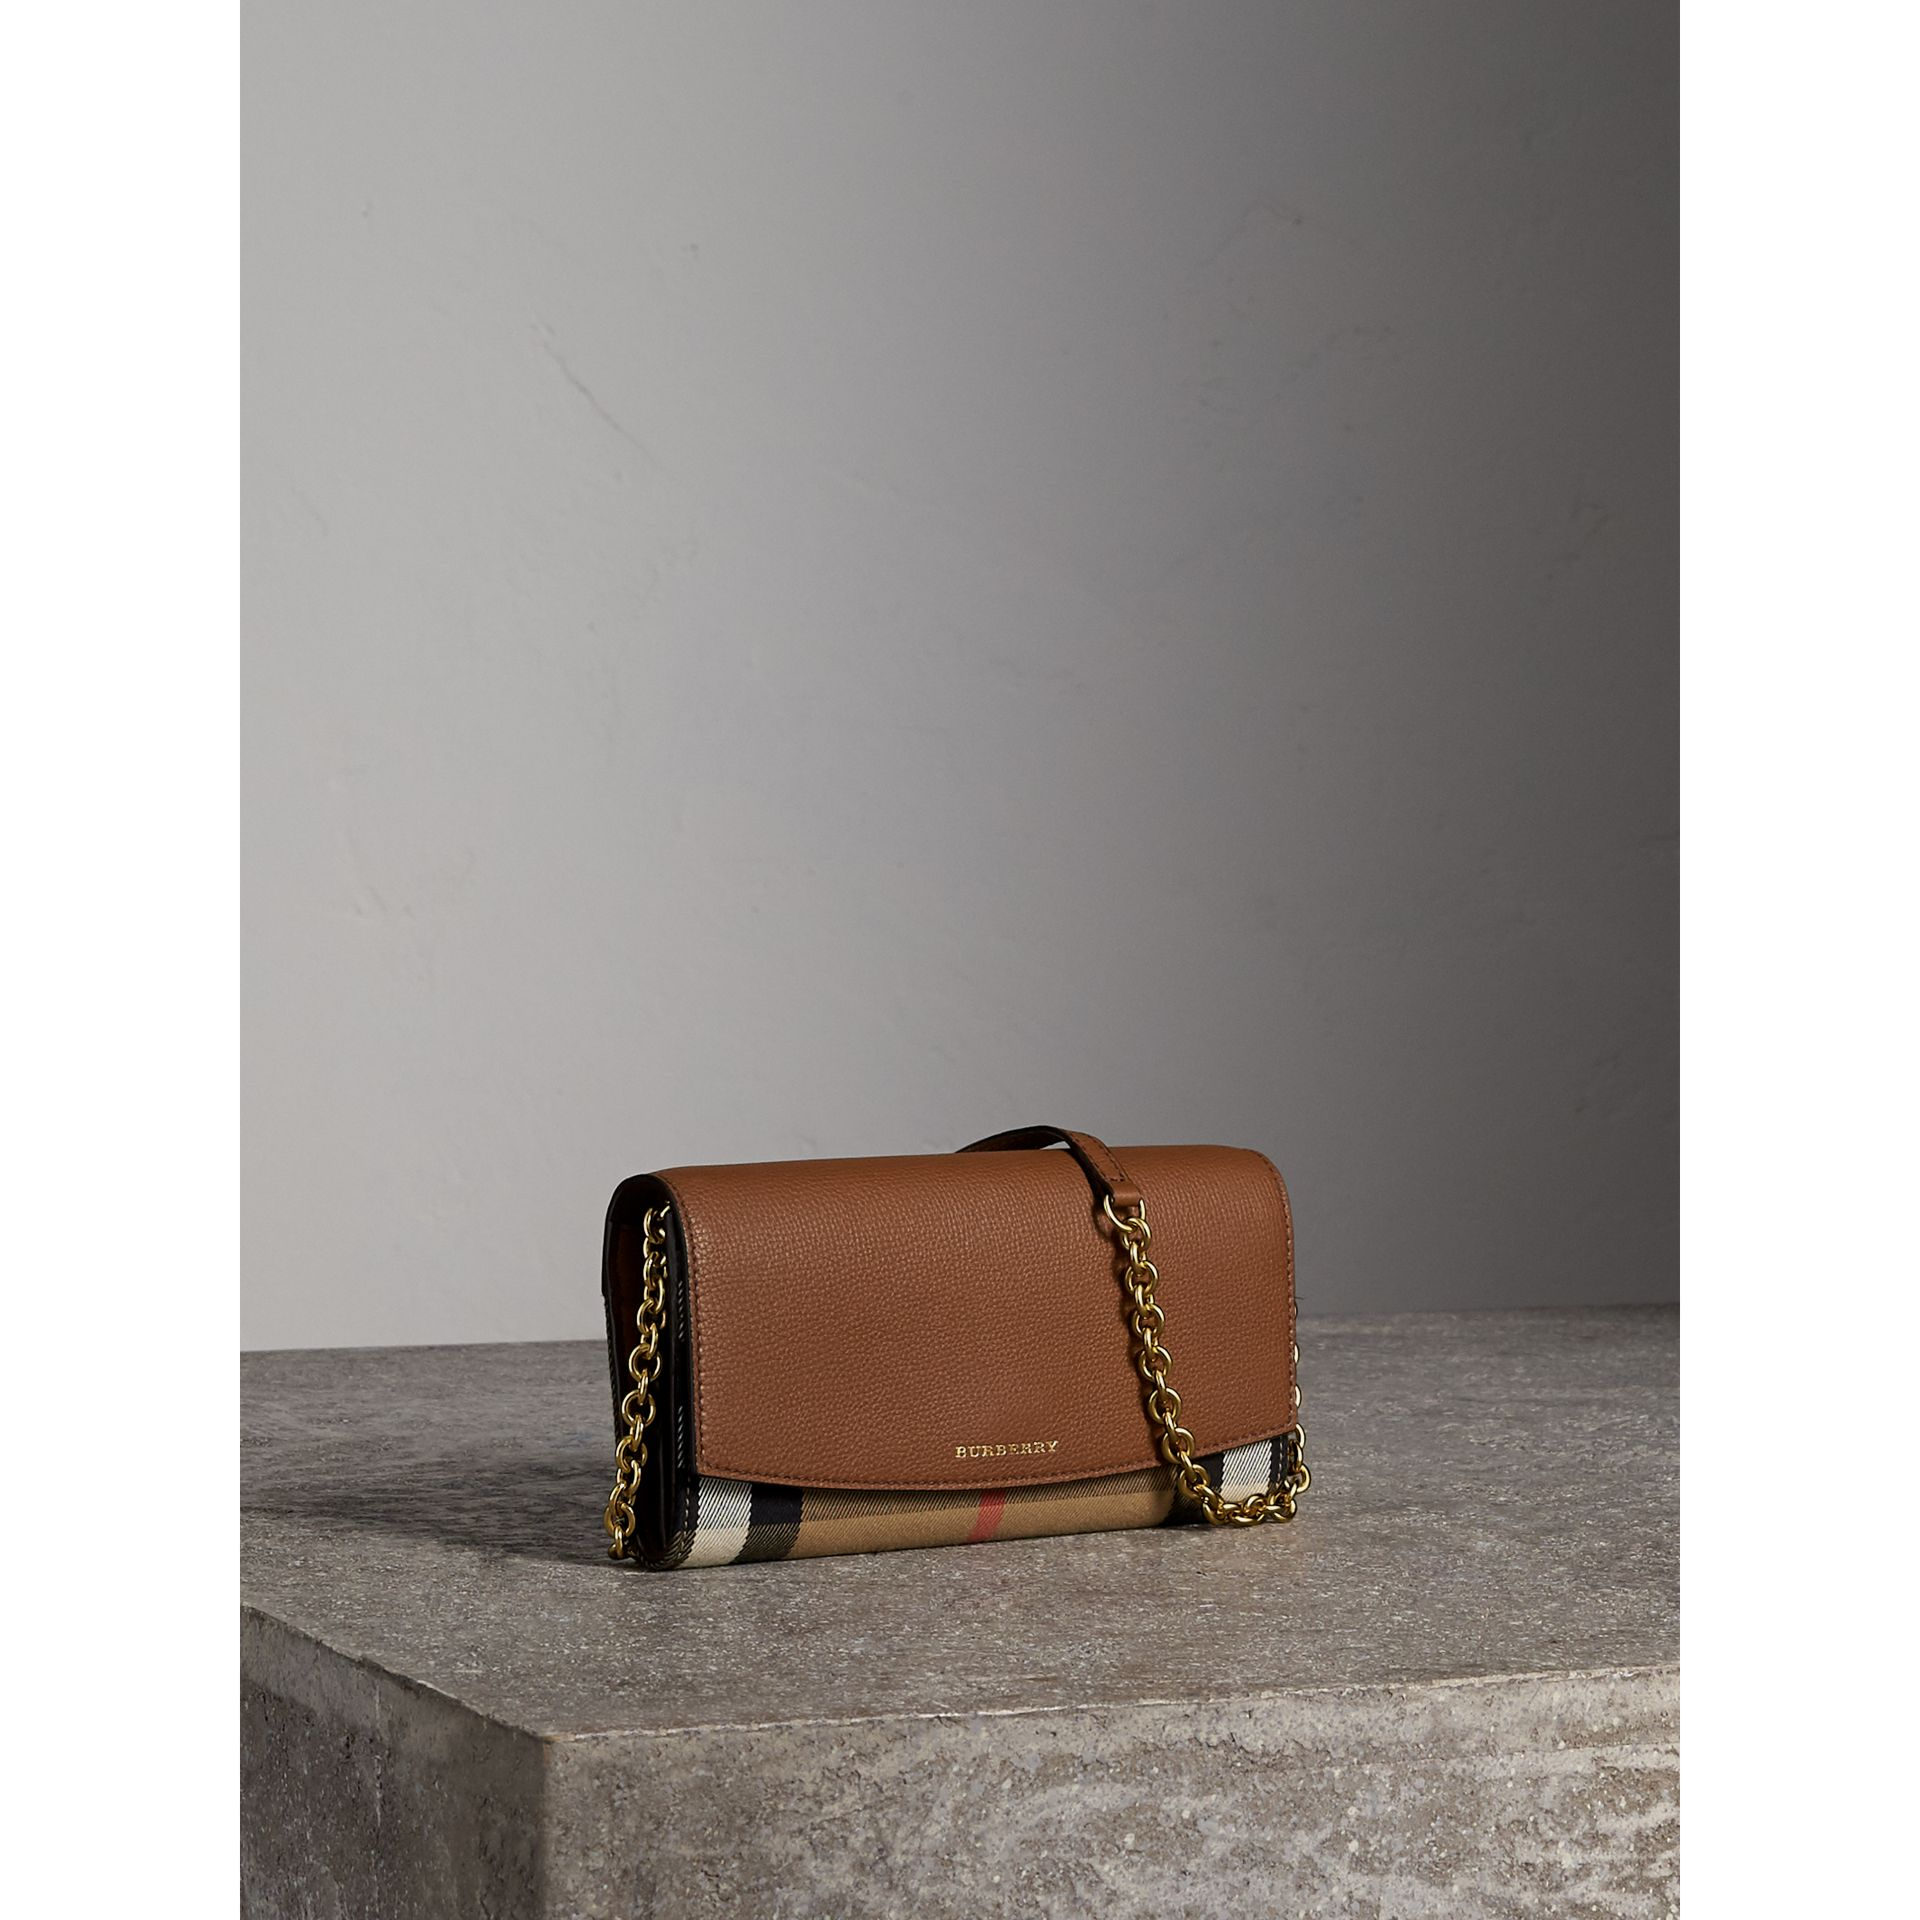 House Check and Leather Wallet with Chain in Tan - Women | Burberry Singapore - gallery image 7